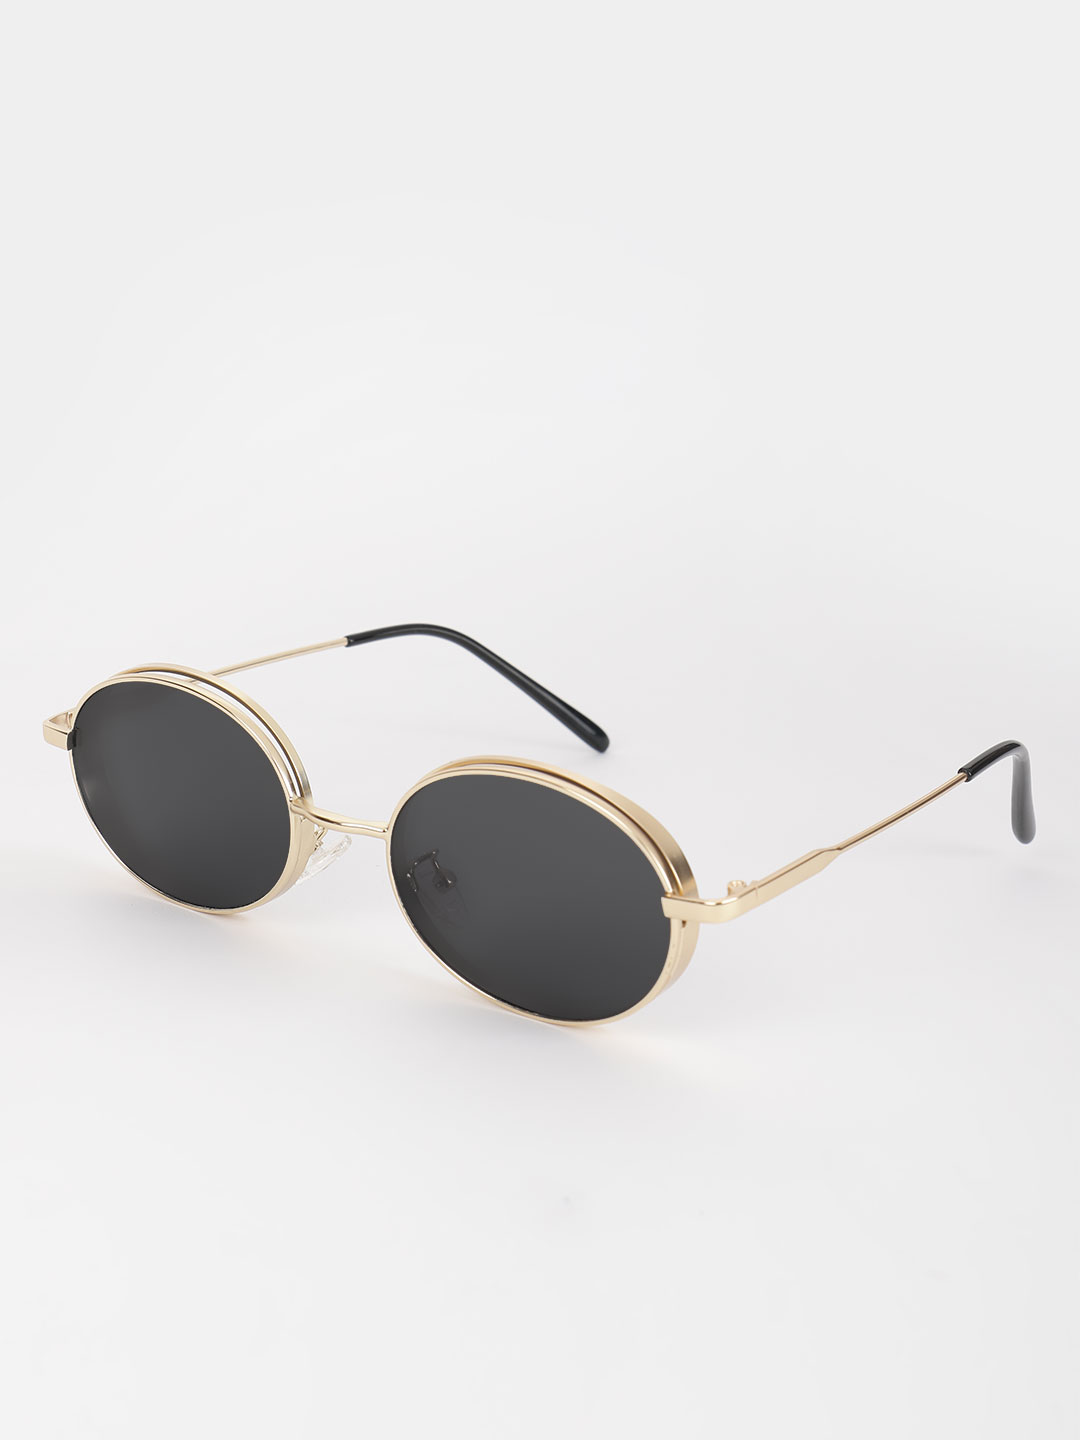 Pataaka Black Coloured Lens Retro Sunglasses 1